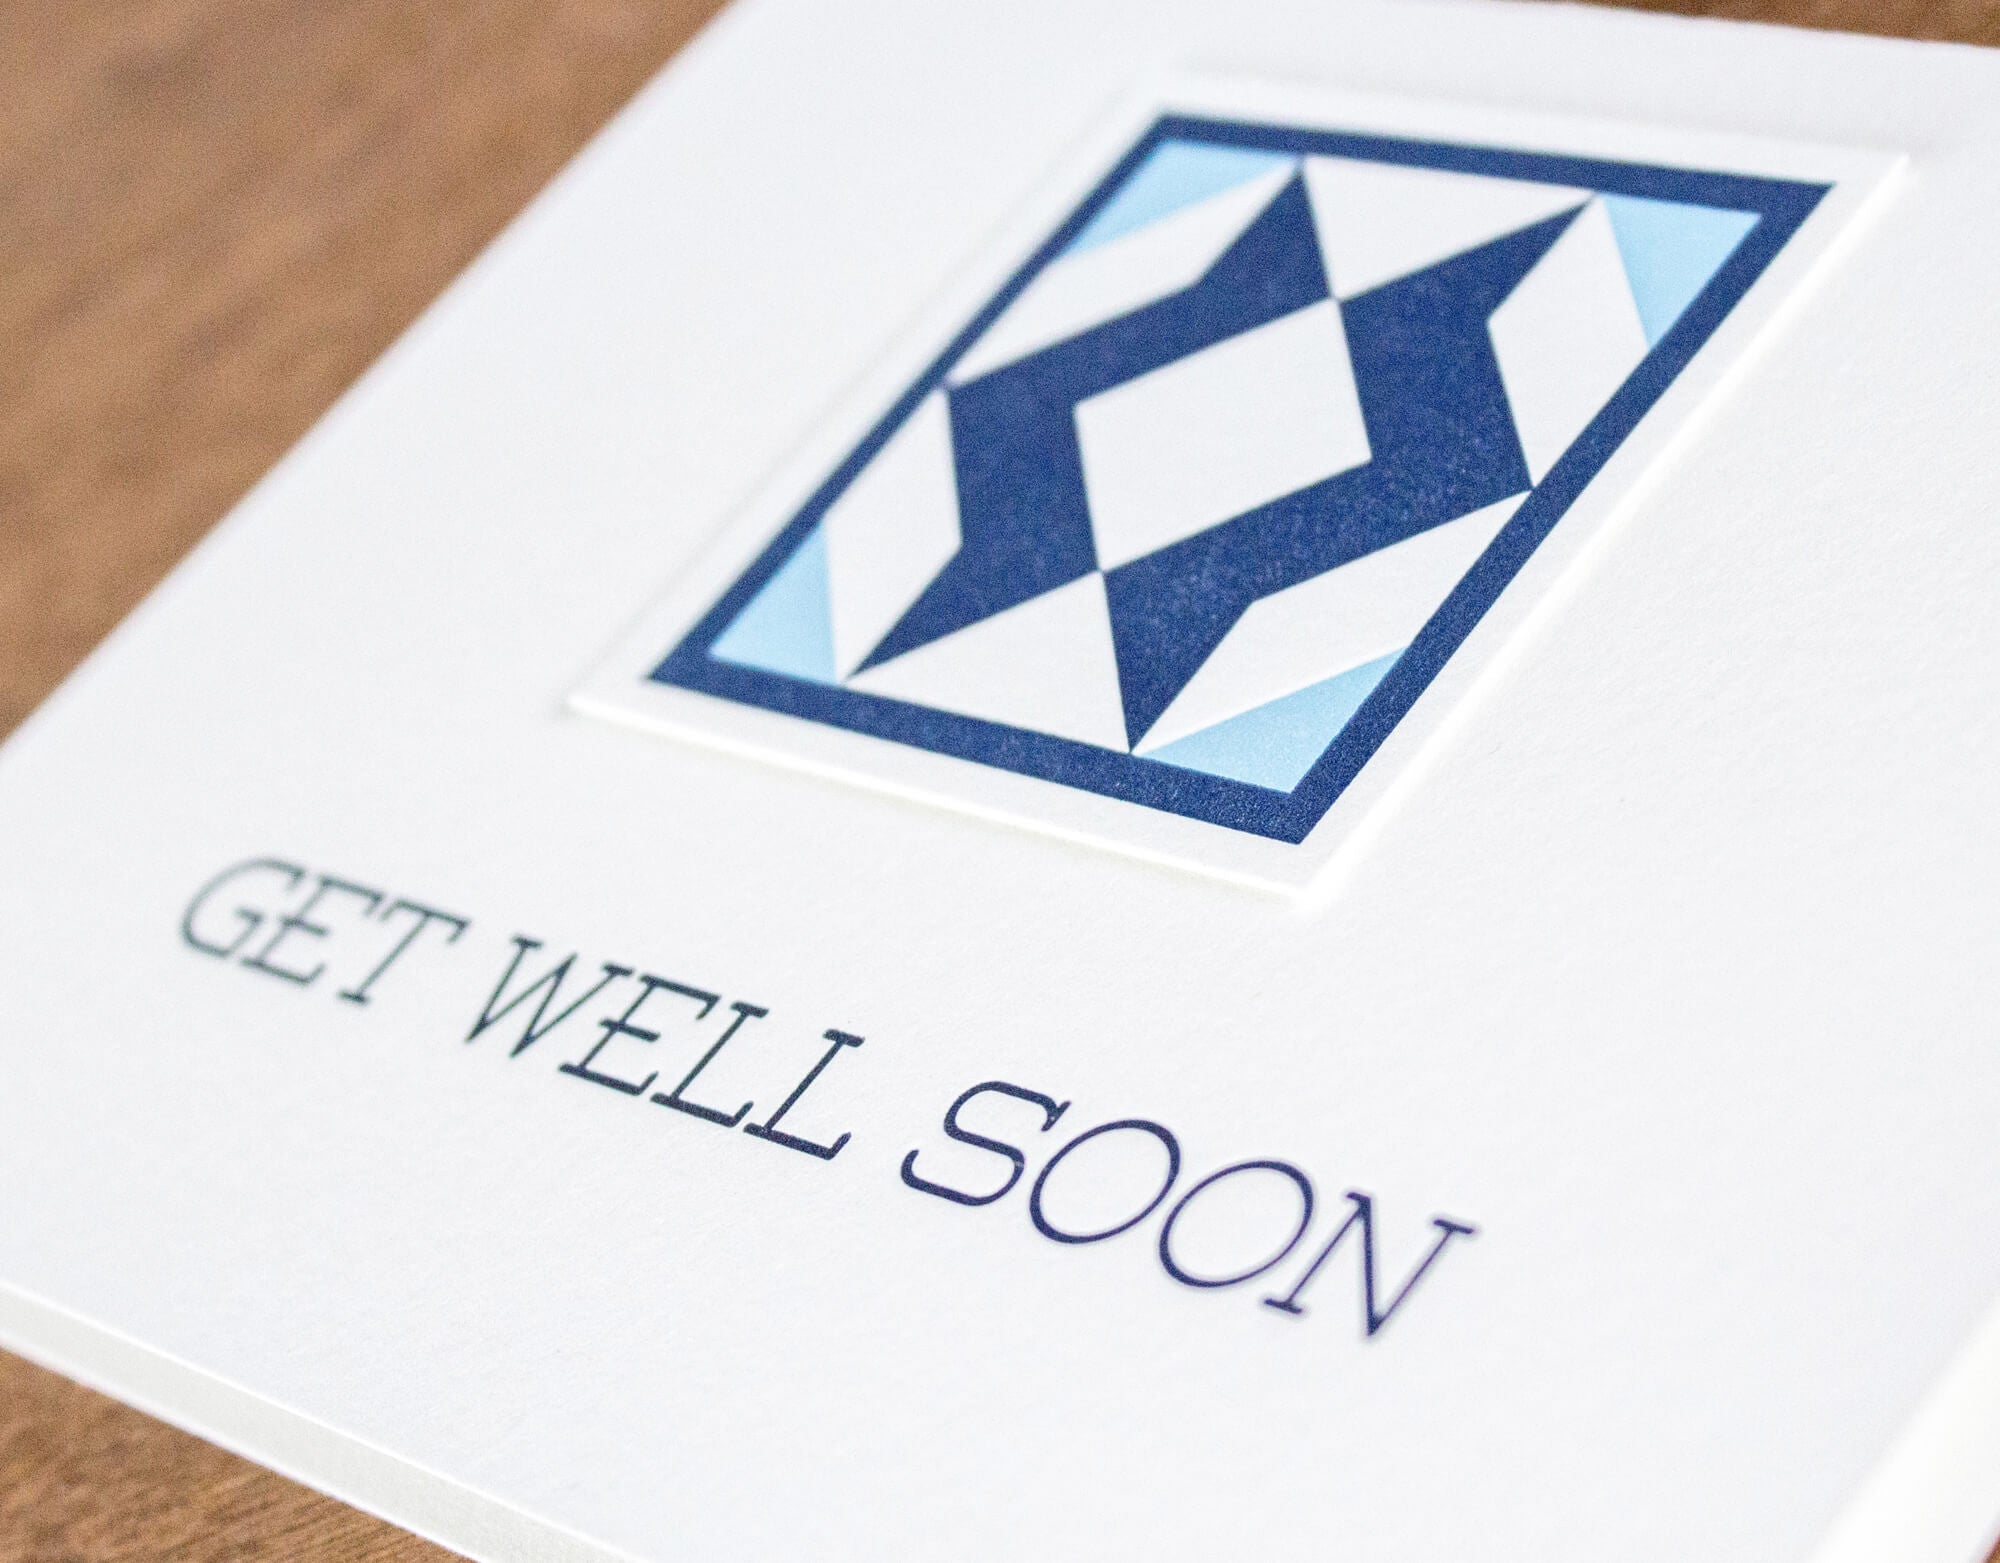 Get Well Soon Quilt Letterpress Greeting Card